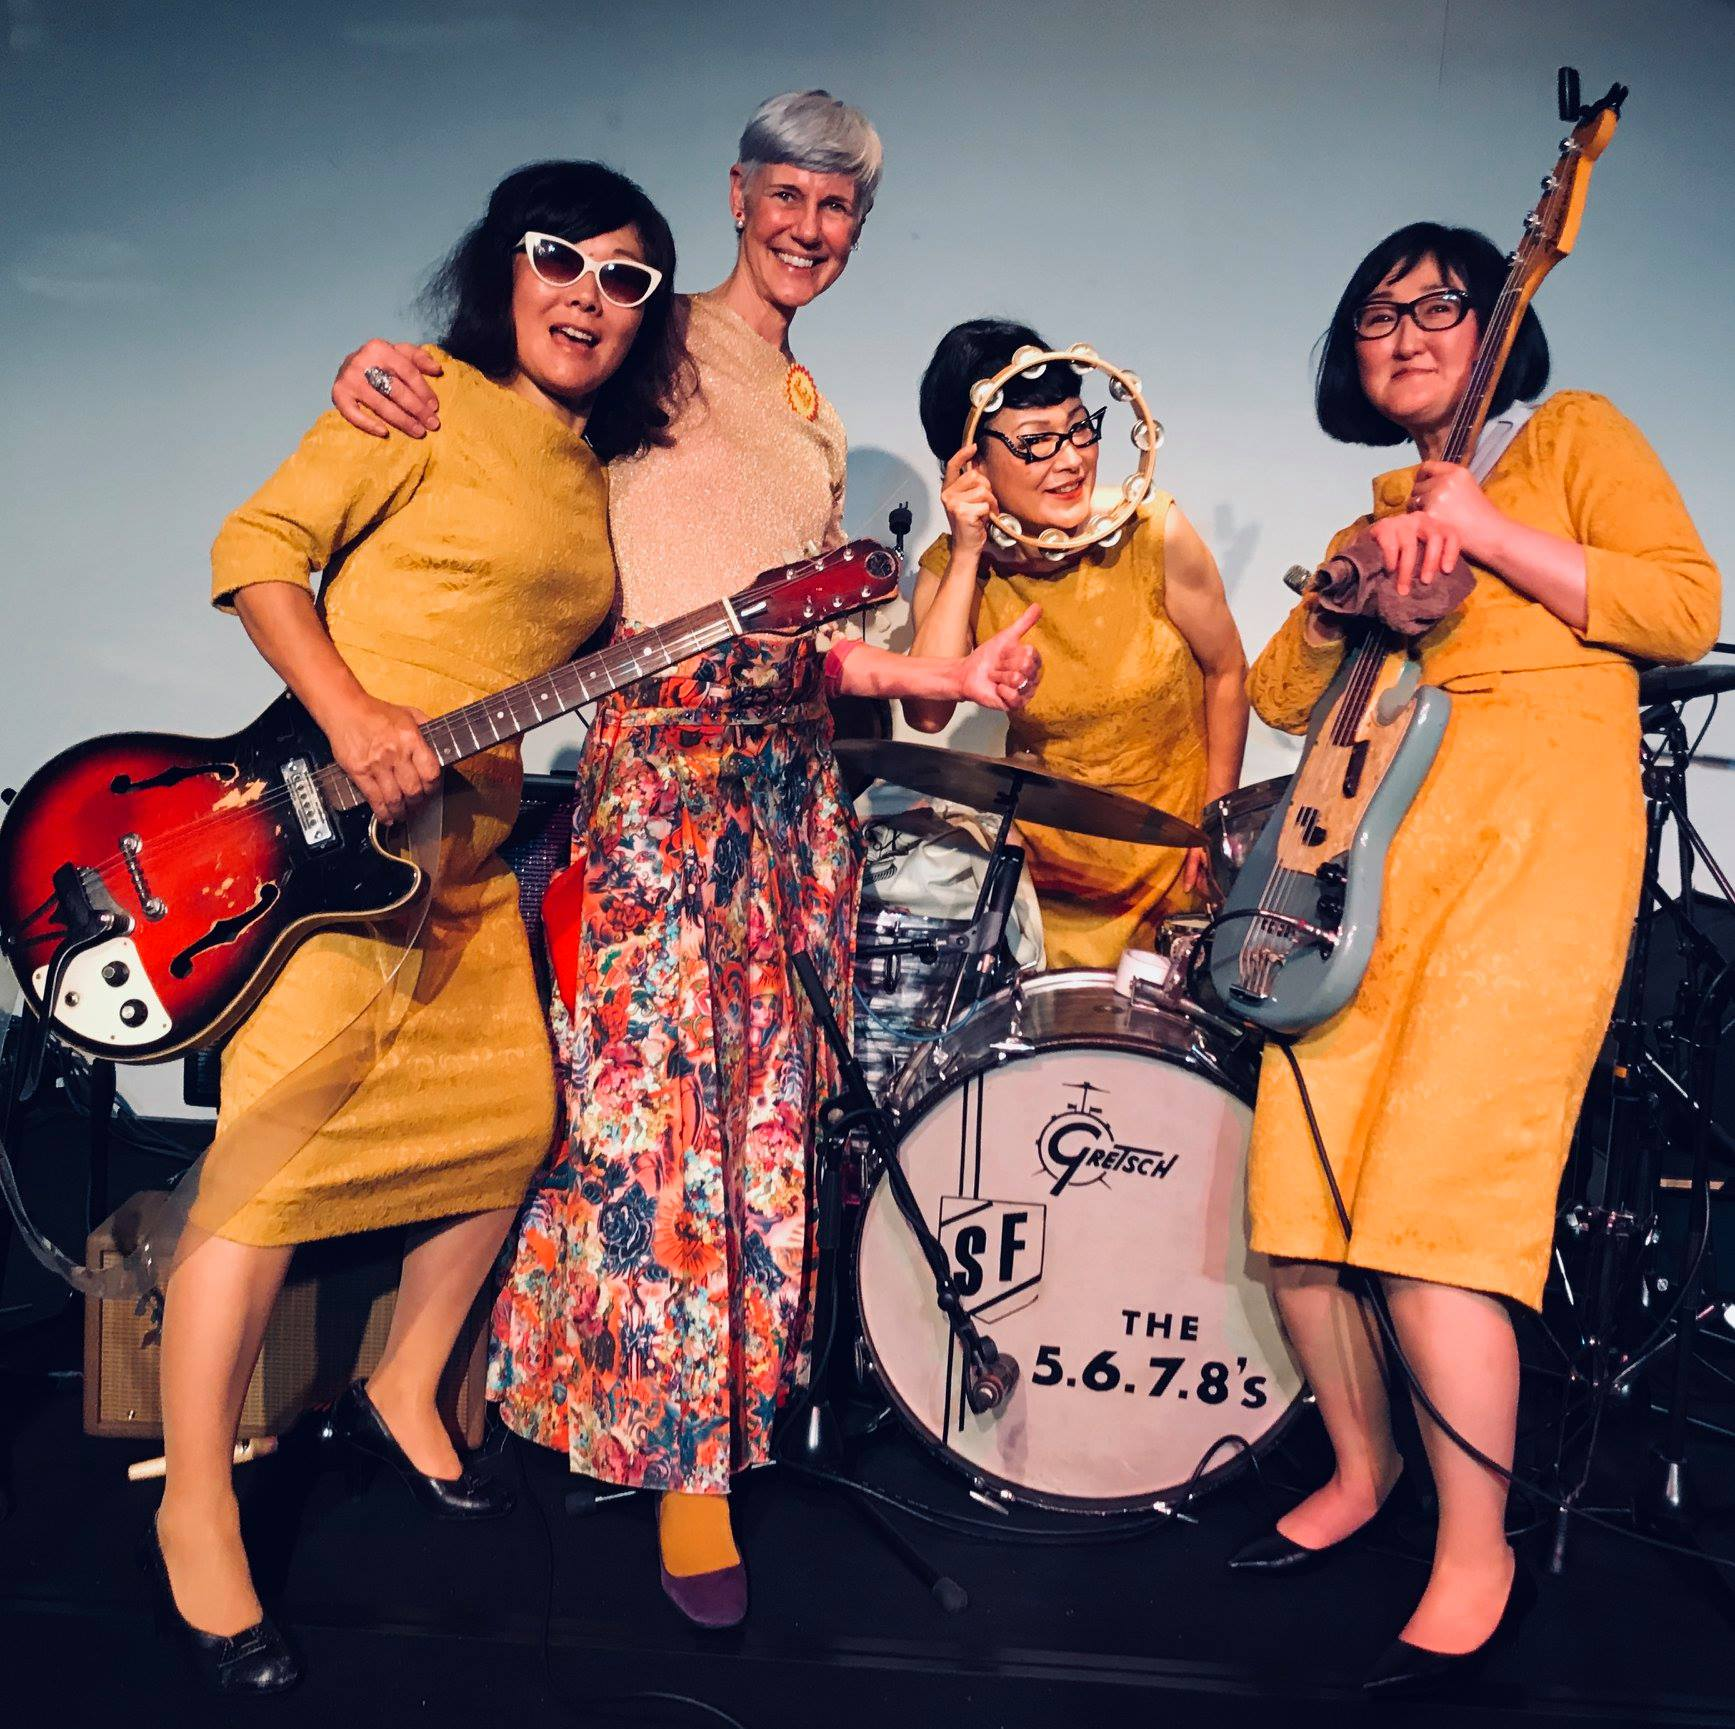 T-21 Days - PowWowers! WOOHOO HOO HOO HOO!!!Here in Tokyo, we're still buzzing from last night's birthday bash for PechaKucha founder Astrid Klein with an unforgettable performance by Japanese all-girl surf rock band (of Kill Bill fame) The 5,6,7,8's. That's just how we roll ;-)Another special friend of PechaKucha who shares 3.22 birthday - The Japan Times - our largest and oldest English-language daily newspaper. Check it out!https://www.japantimes.co.jp/